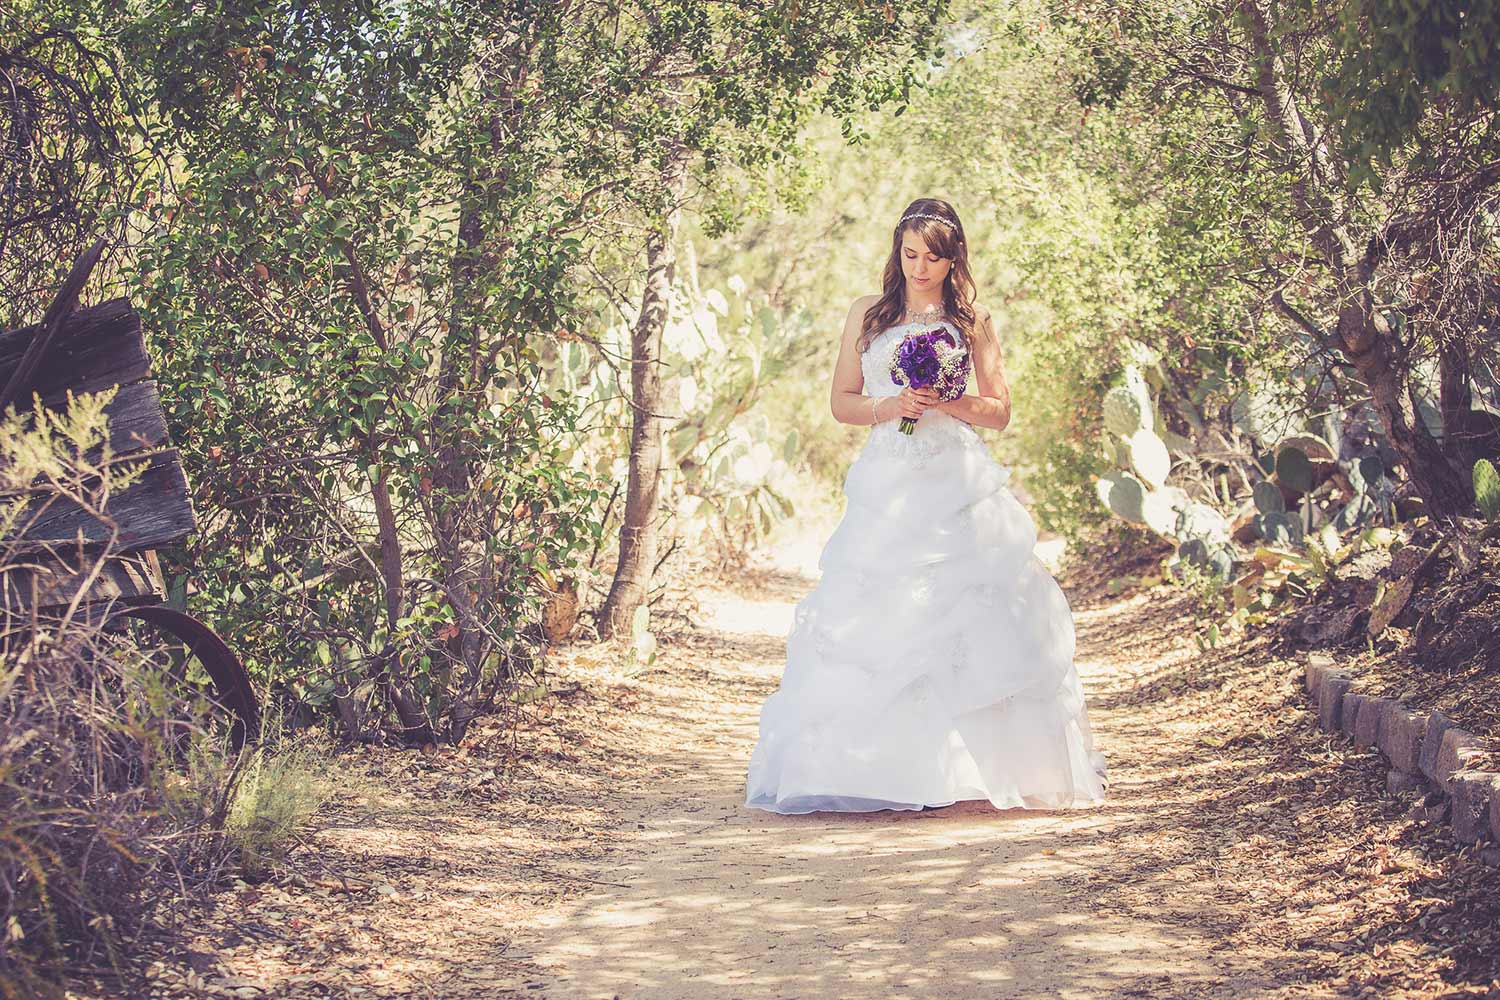 Getting Married? - John Doukas Photography is your premier wedding photographer in Orange County, Los Angeles and all of Southern California. With a focus on candid lifestyle and a photo journalistic approach to your wedding day